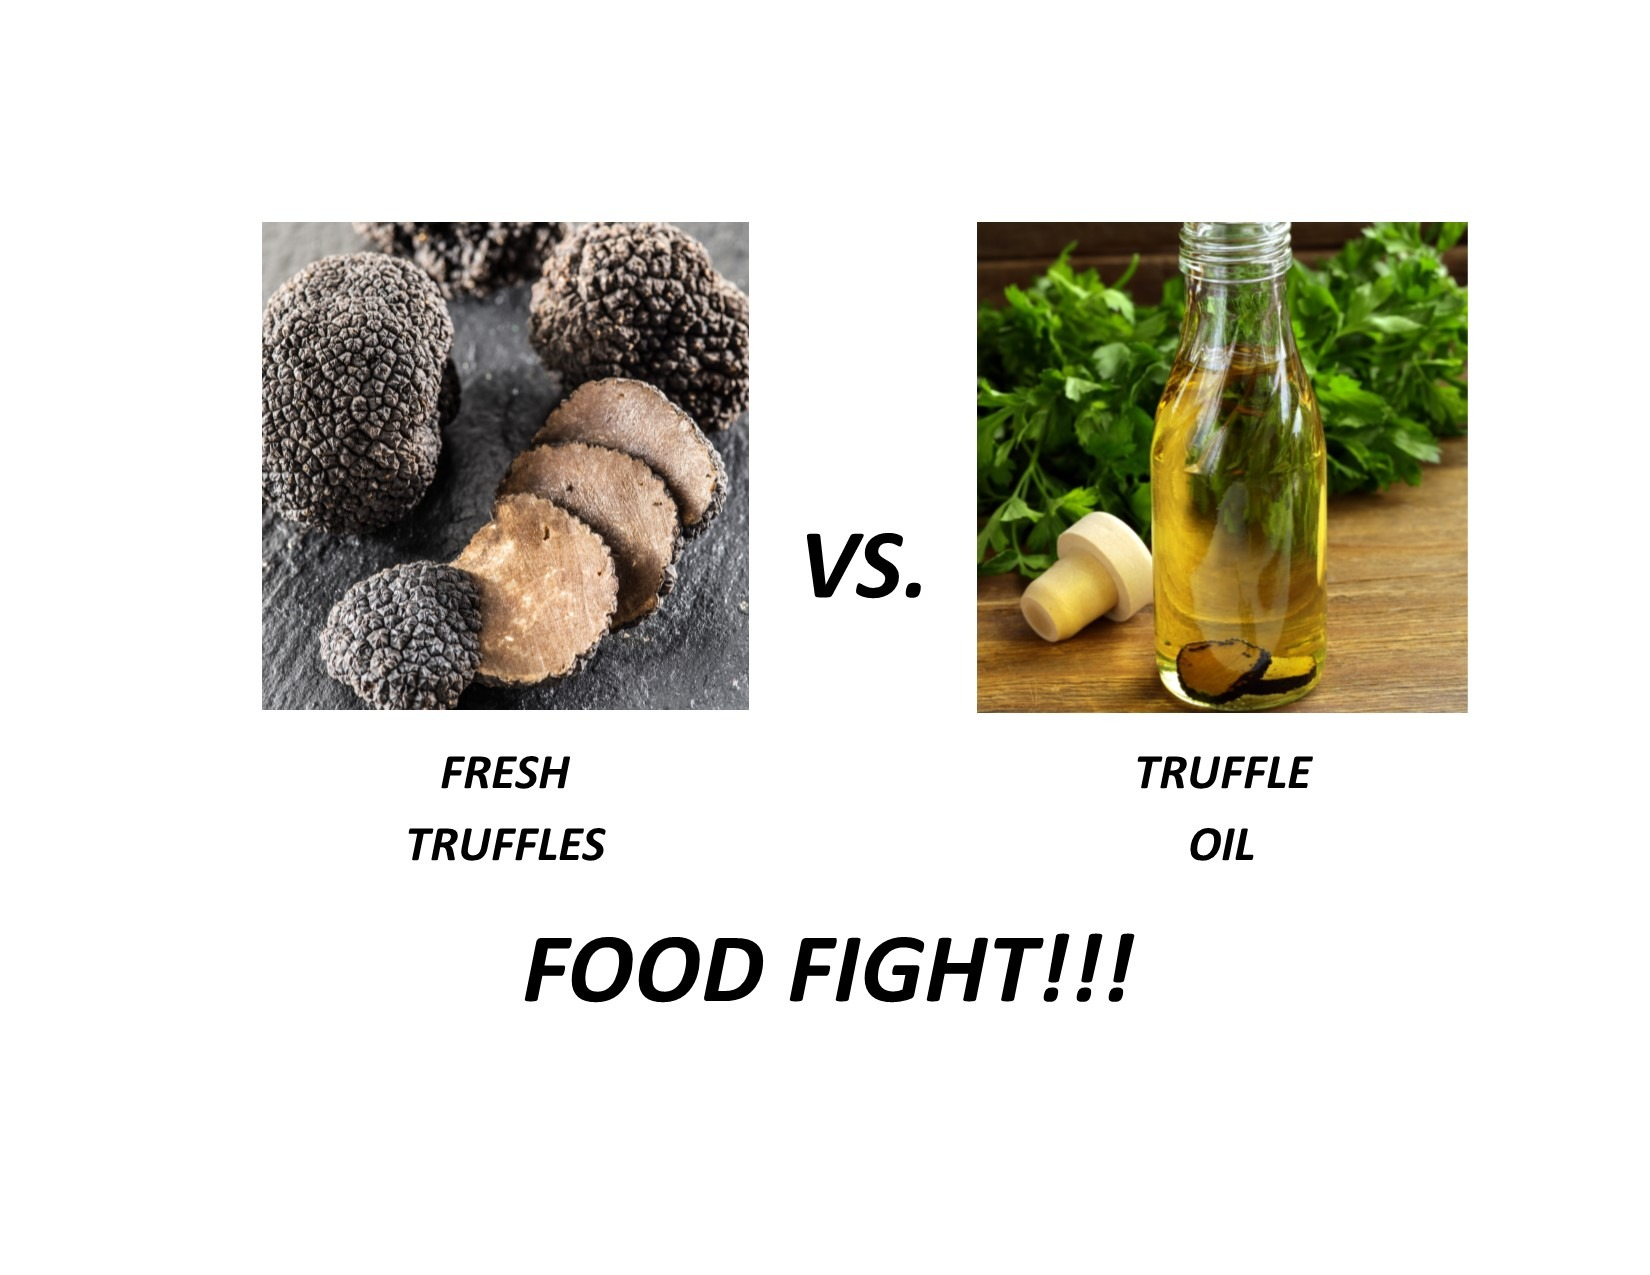 Truffles vs Oil